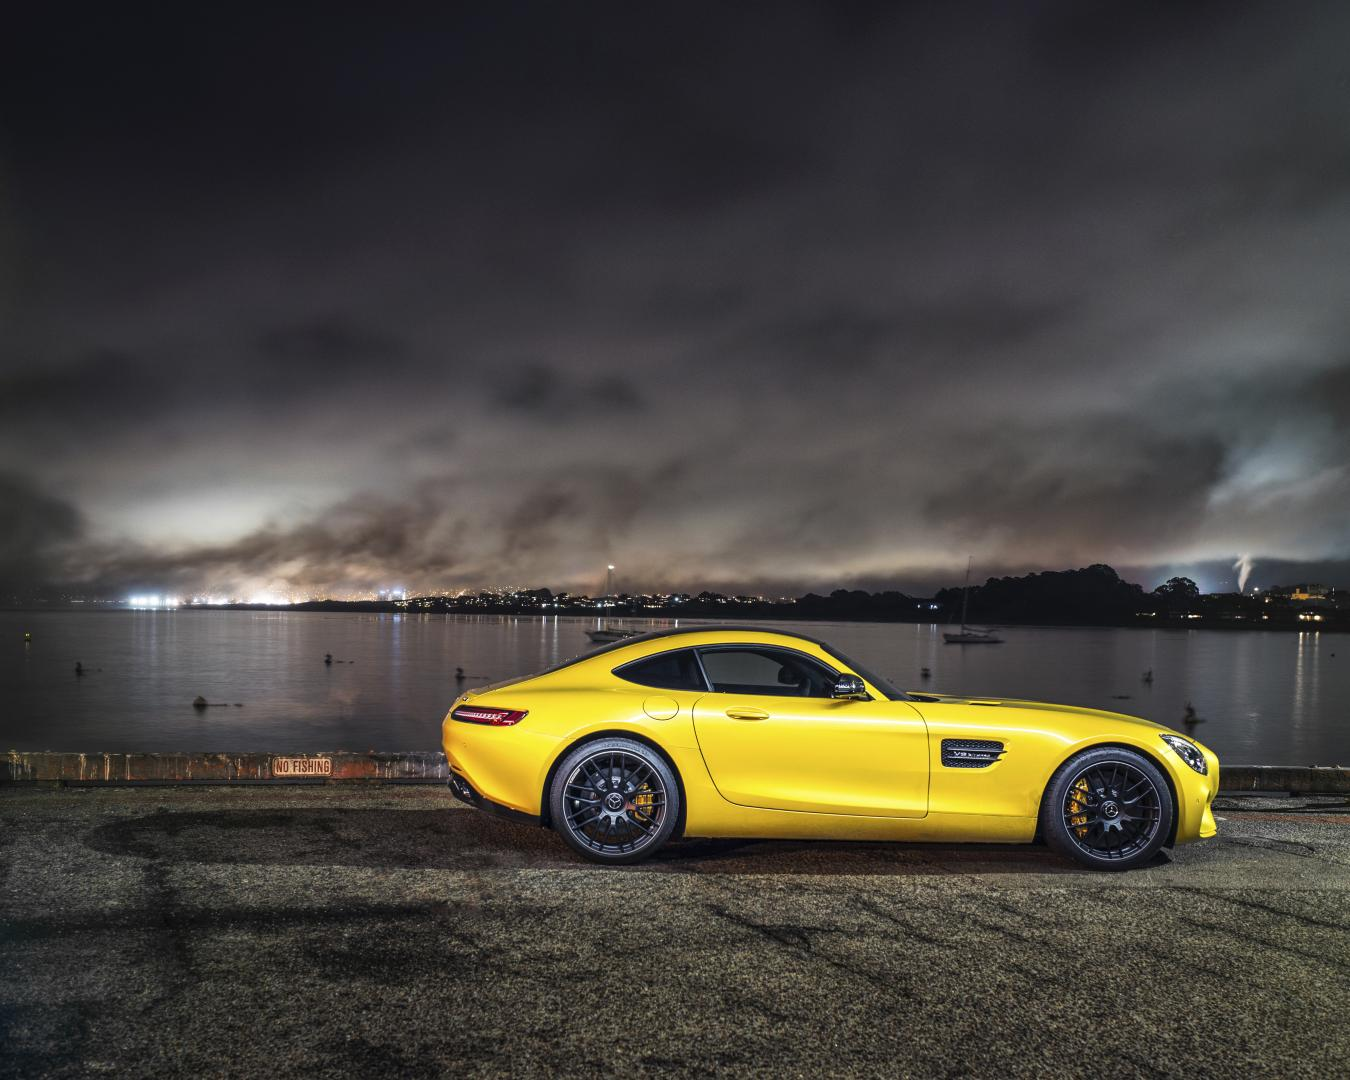 mercedes amg gt s autotest gewoonweg uitstekend. Black Bedroom Furniture Sets. Home Design Ideas